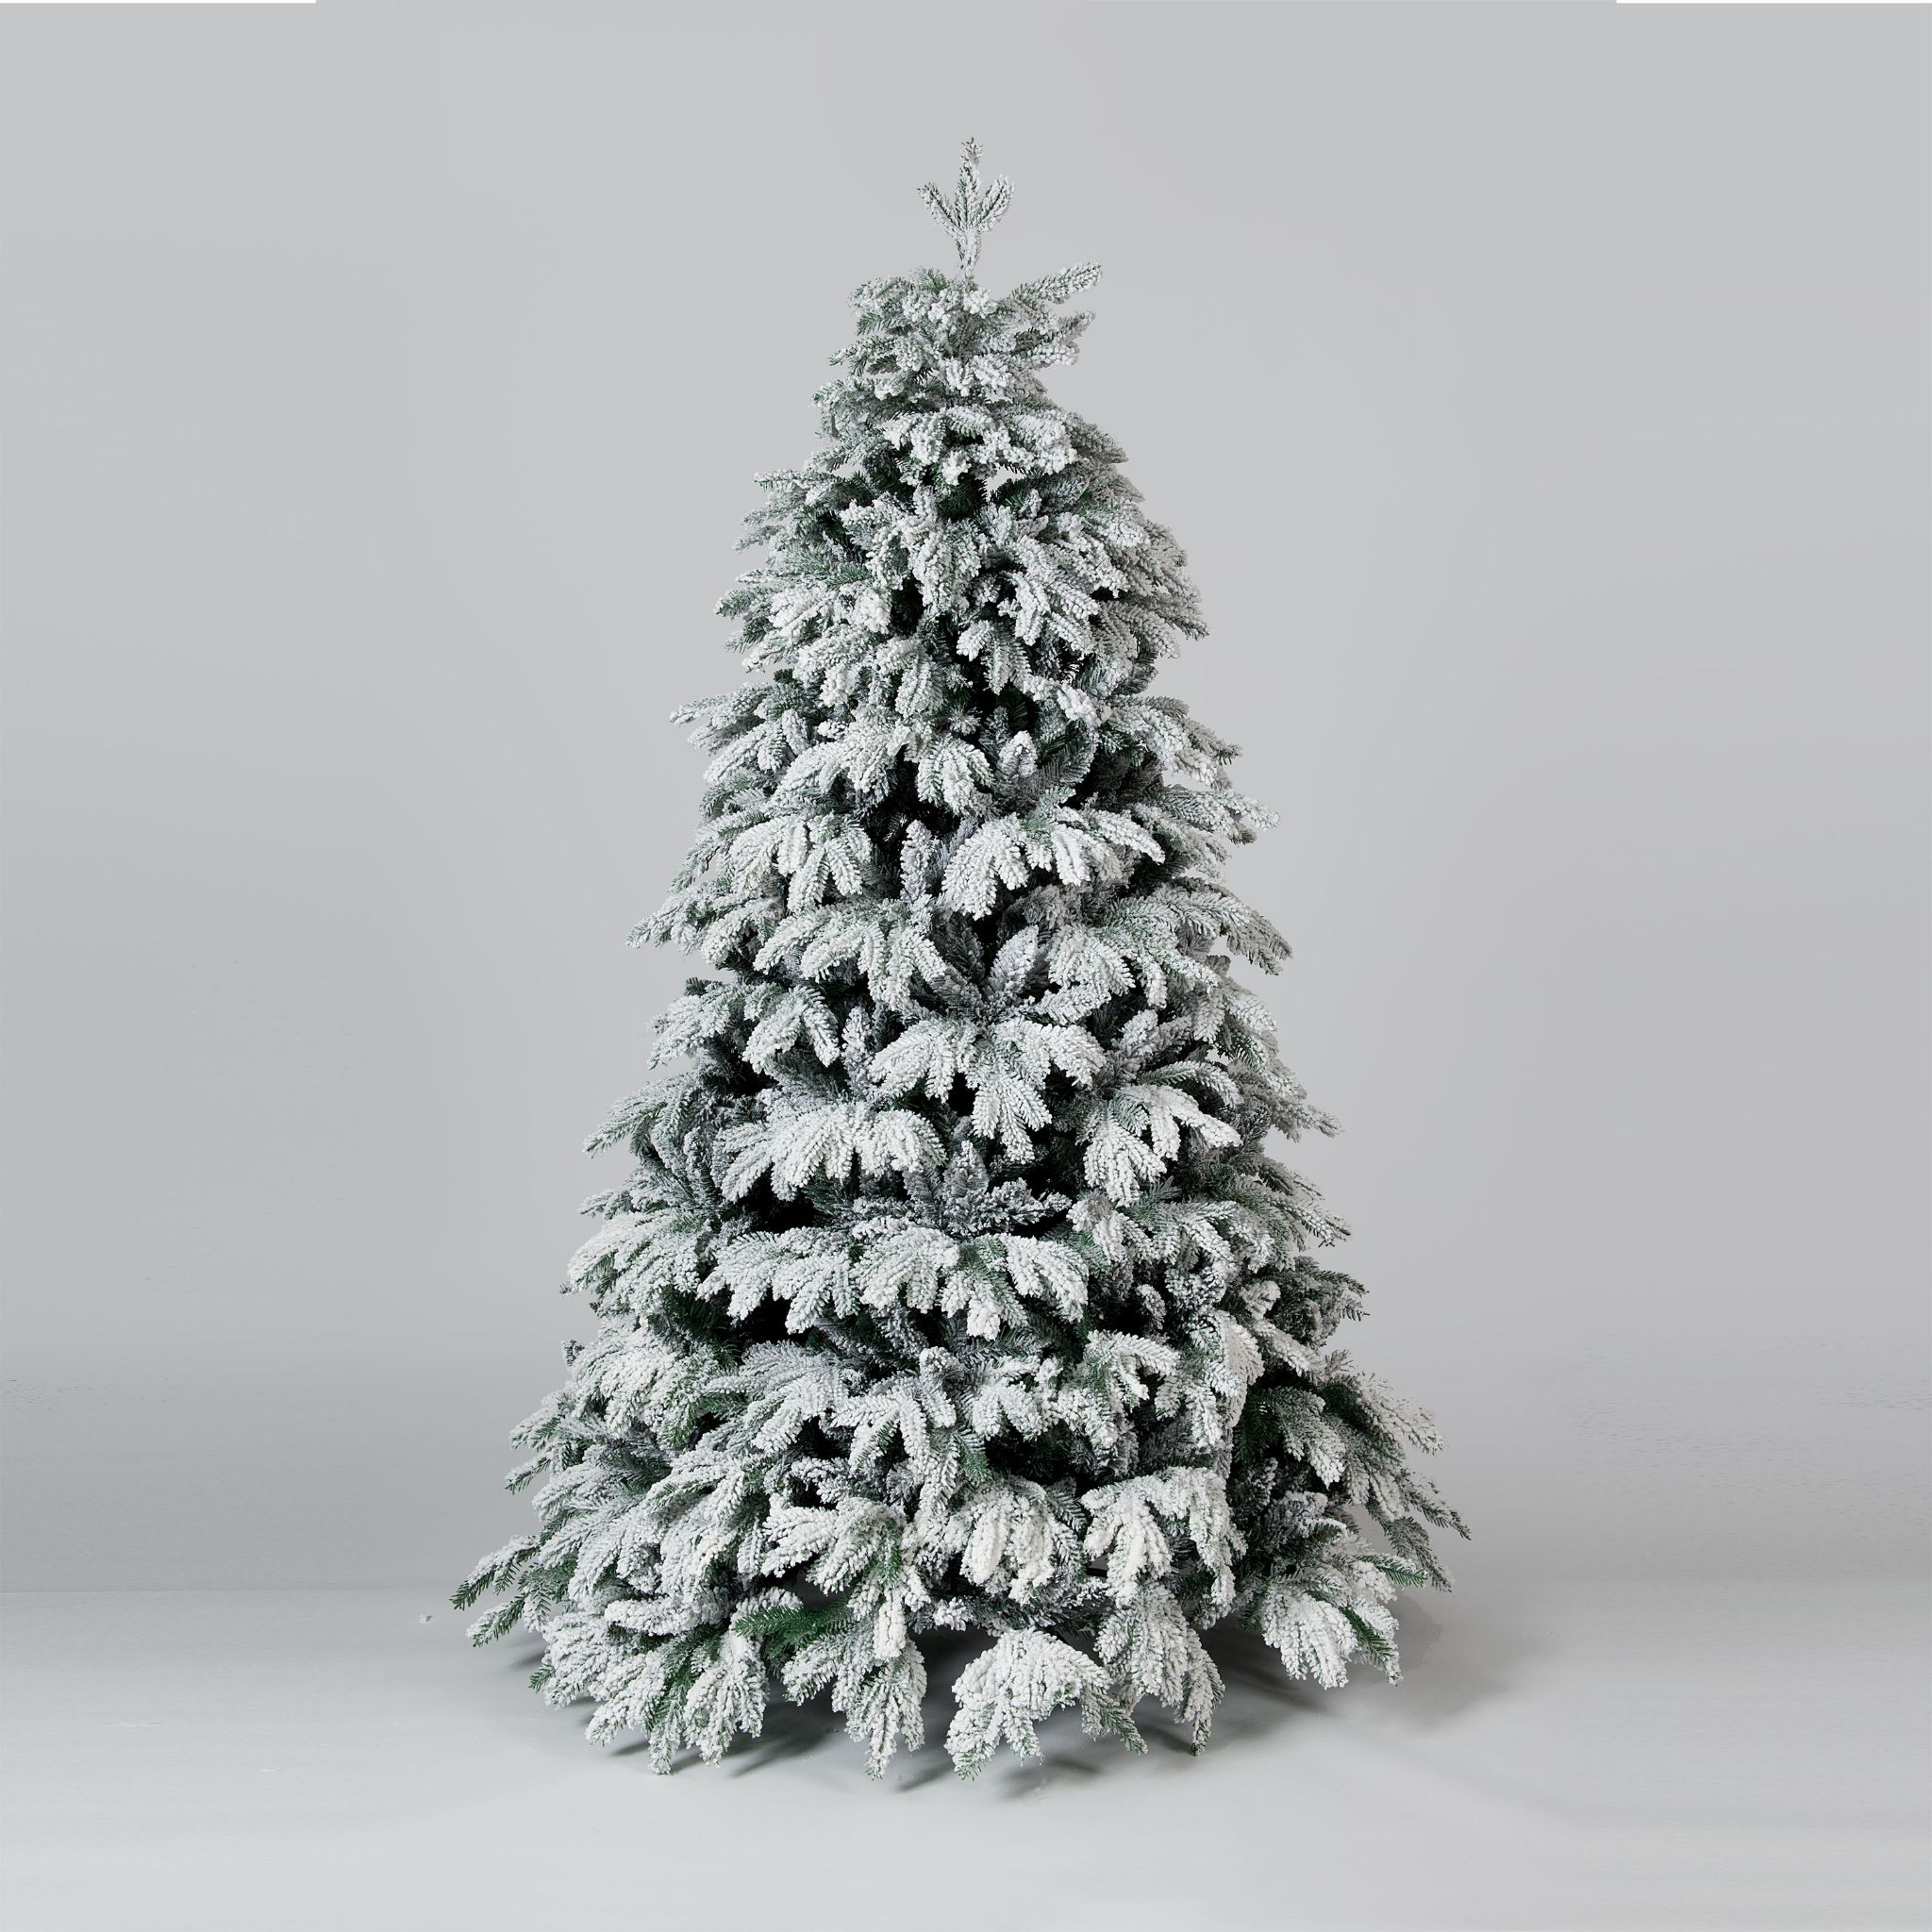 12 Ft Flocked Christmas Tree: 5ft 6ft Or 7ft Cascade Premium Snow Flocked PE Christmas